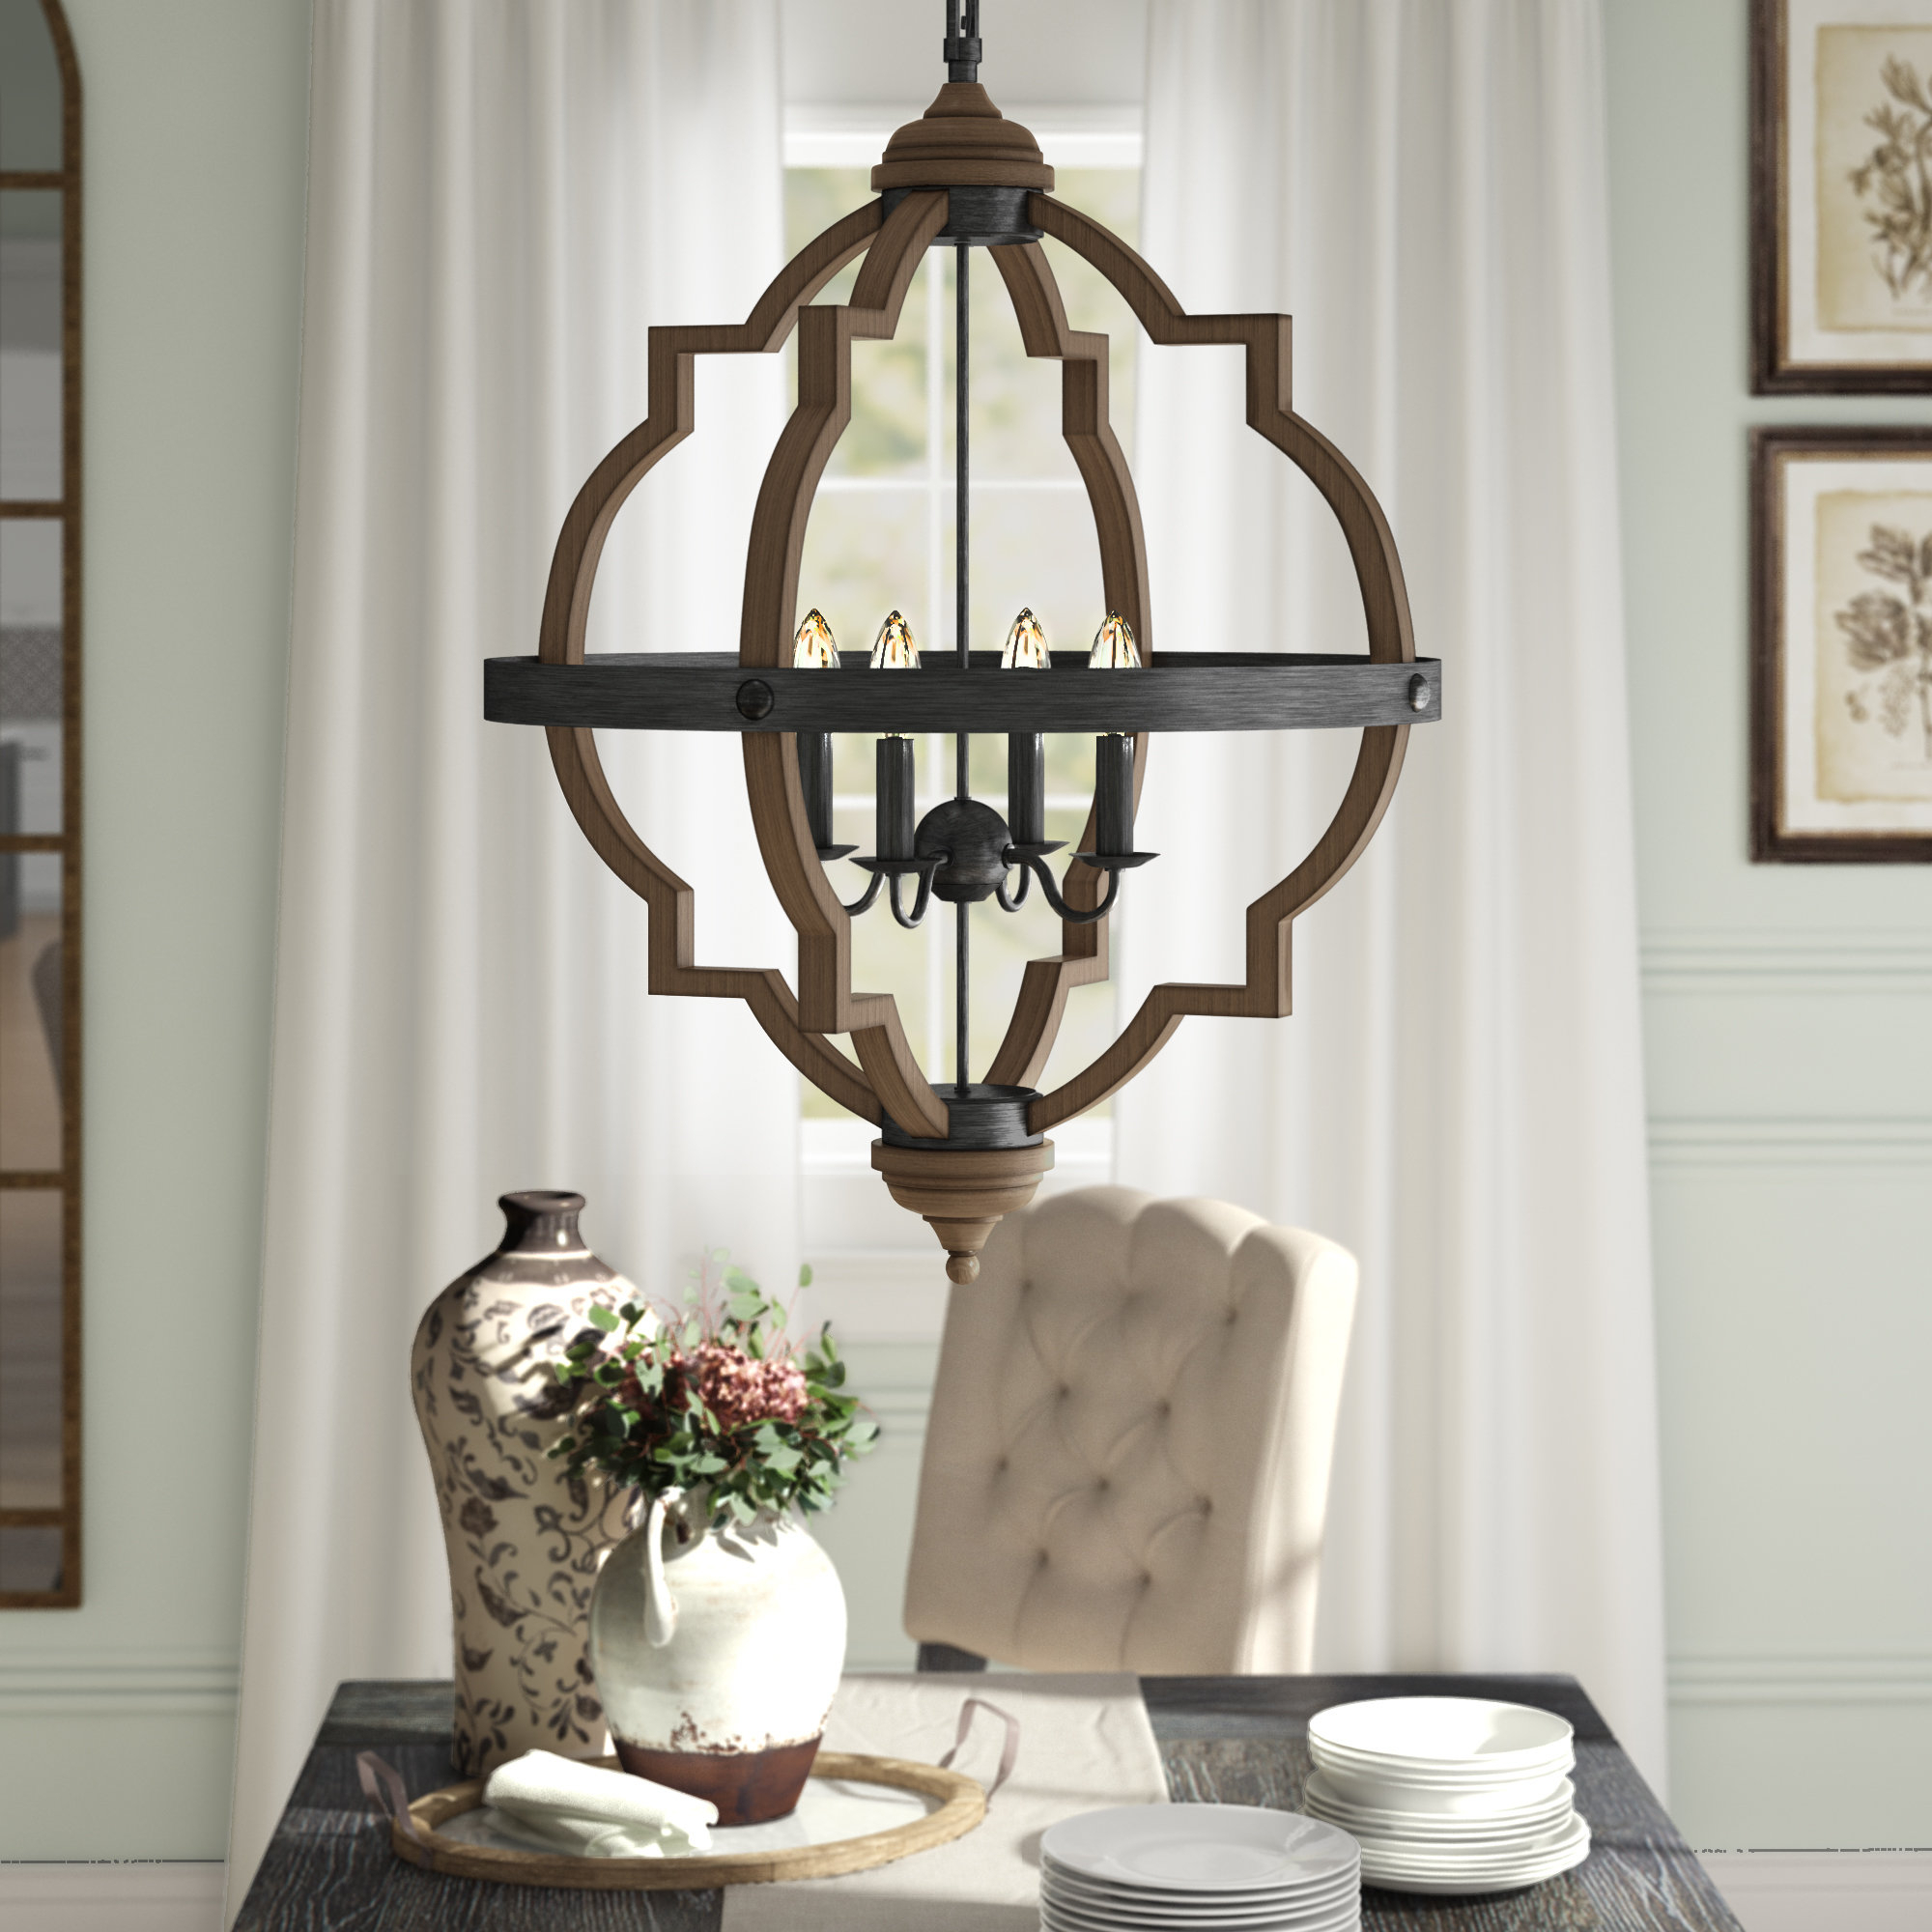 Bennington 4-Light Candle Style Chandeliers in 2019 Bennington 4-Light Candle Style Chandelier